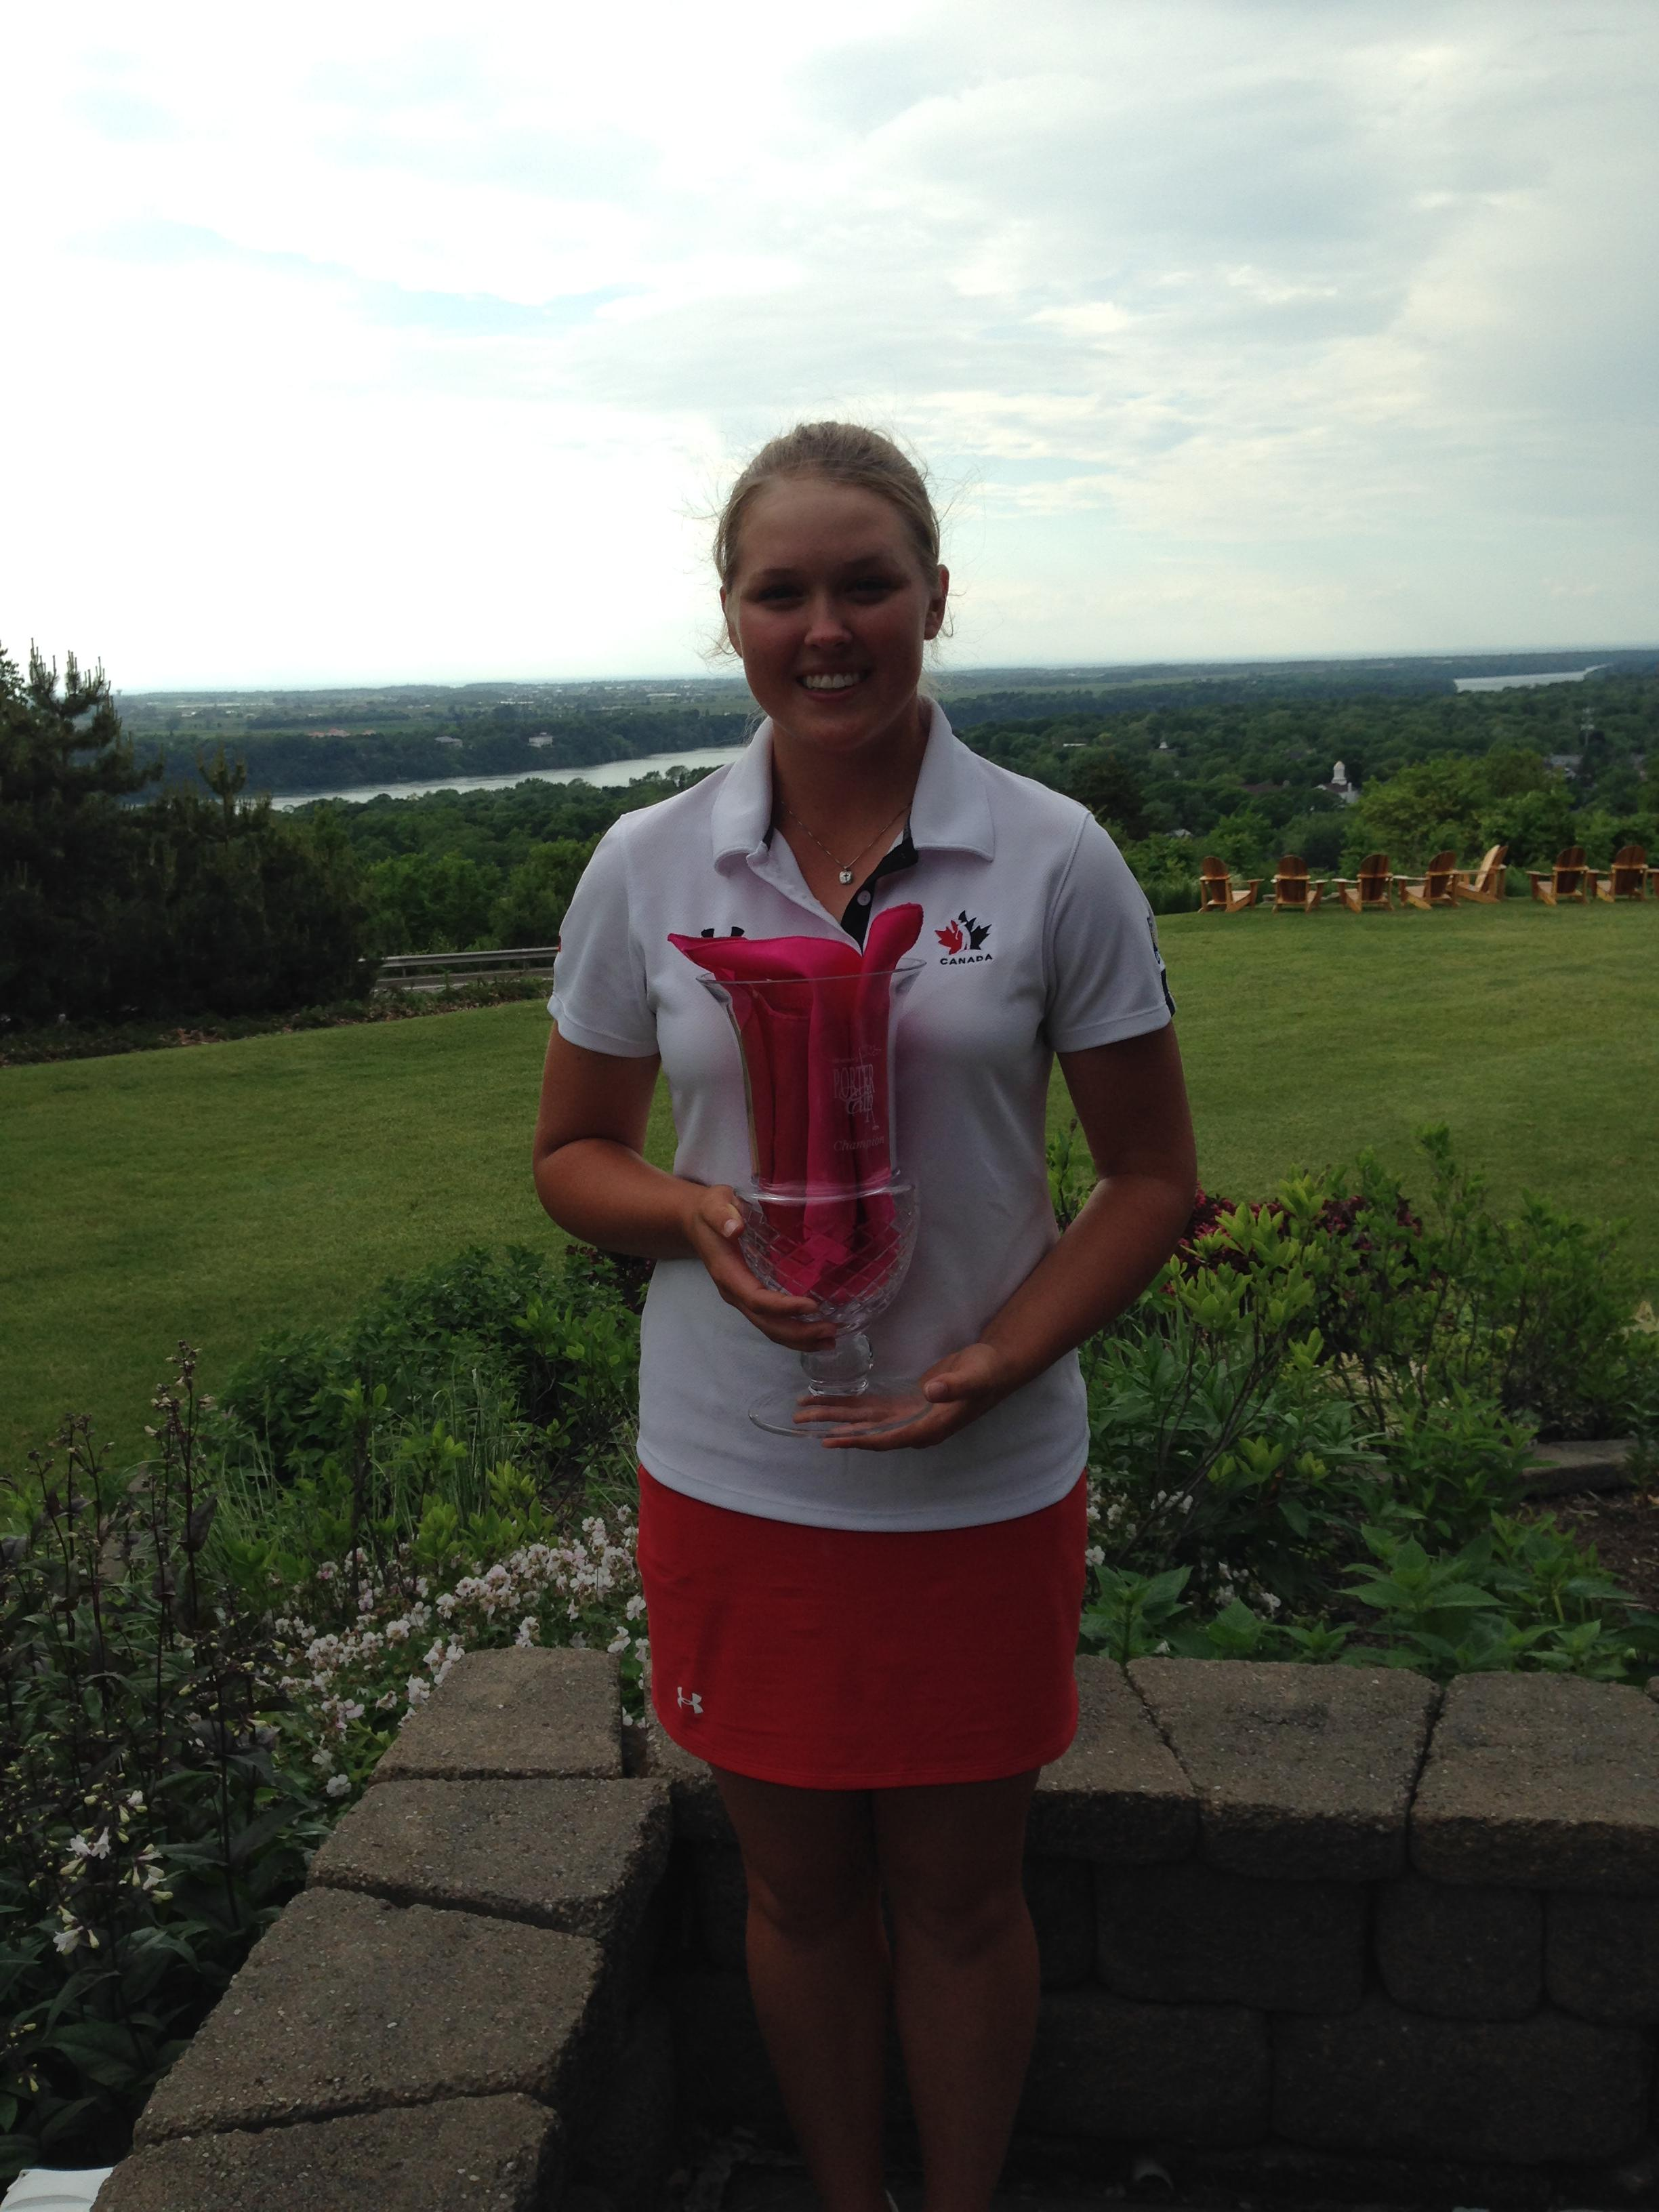 Brooke Henderson after her victory at the Women's Porter Cup.